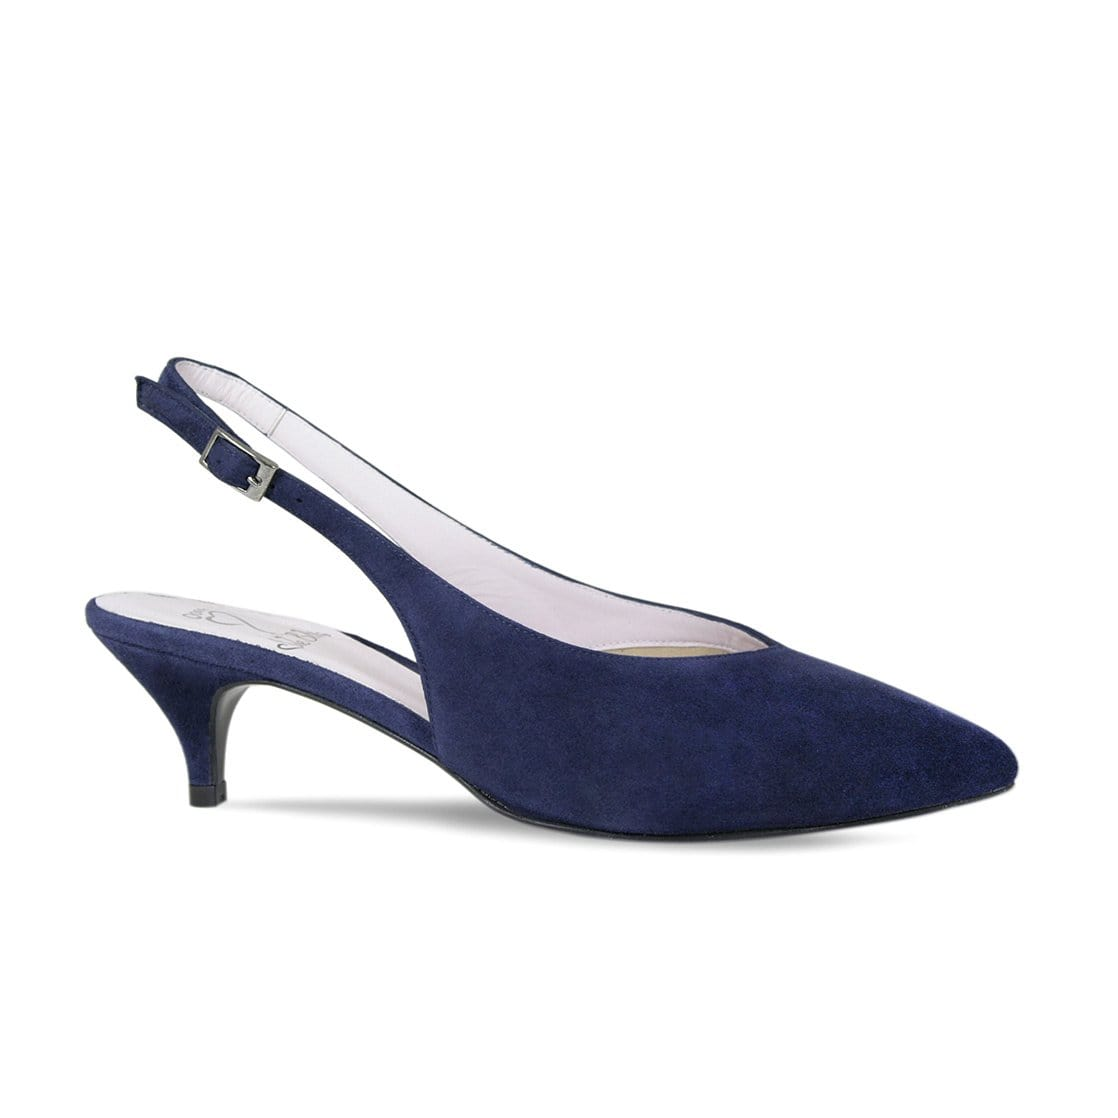 Navy Suede Sling-Back Kitten Pumps